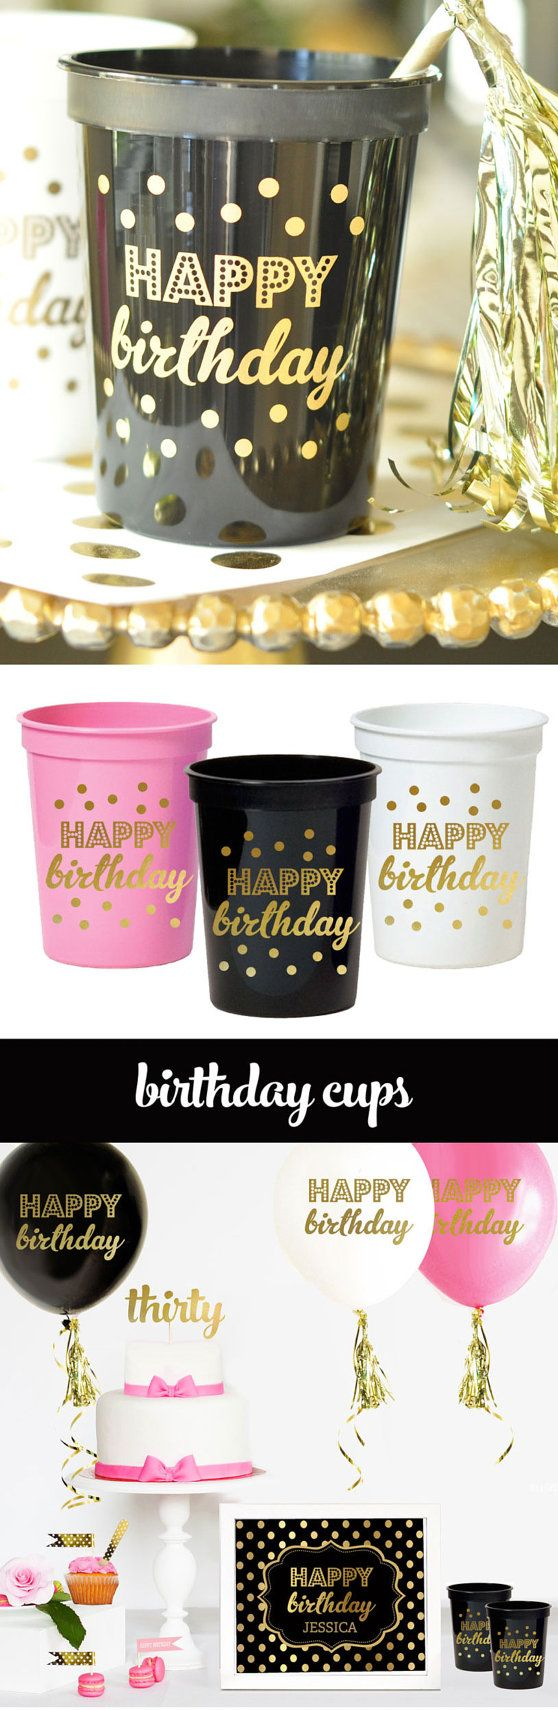 Hey, I found this really awesome Etsy listing at https://www.etsy.com/listing/261317971/adult-birthday-party-decorations-adult